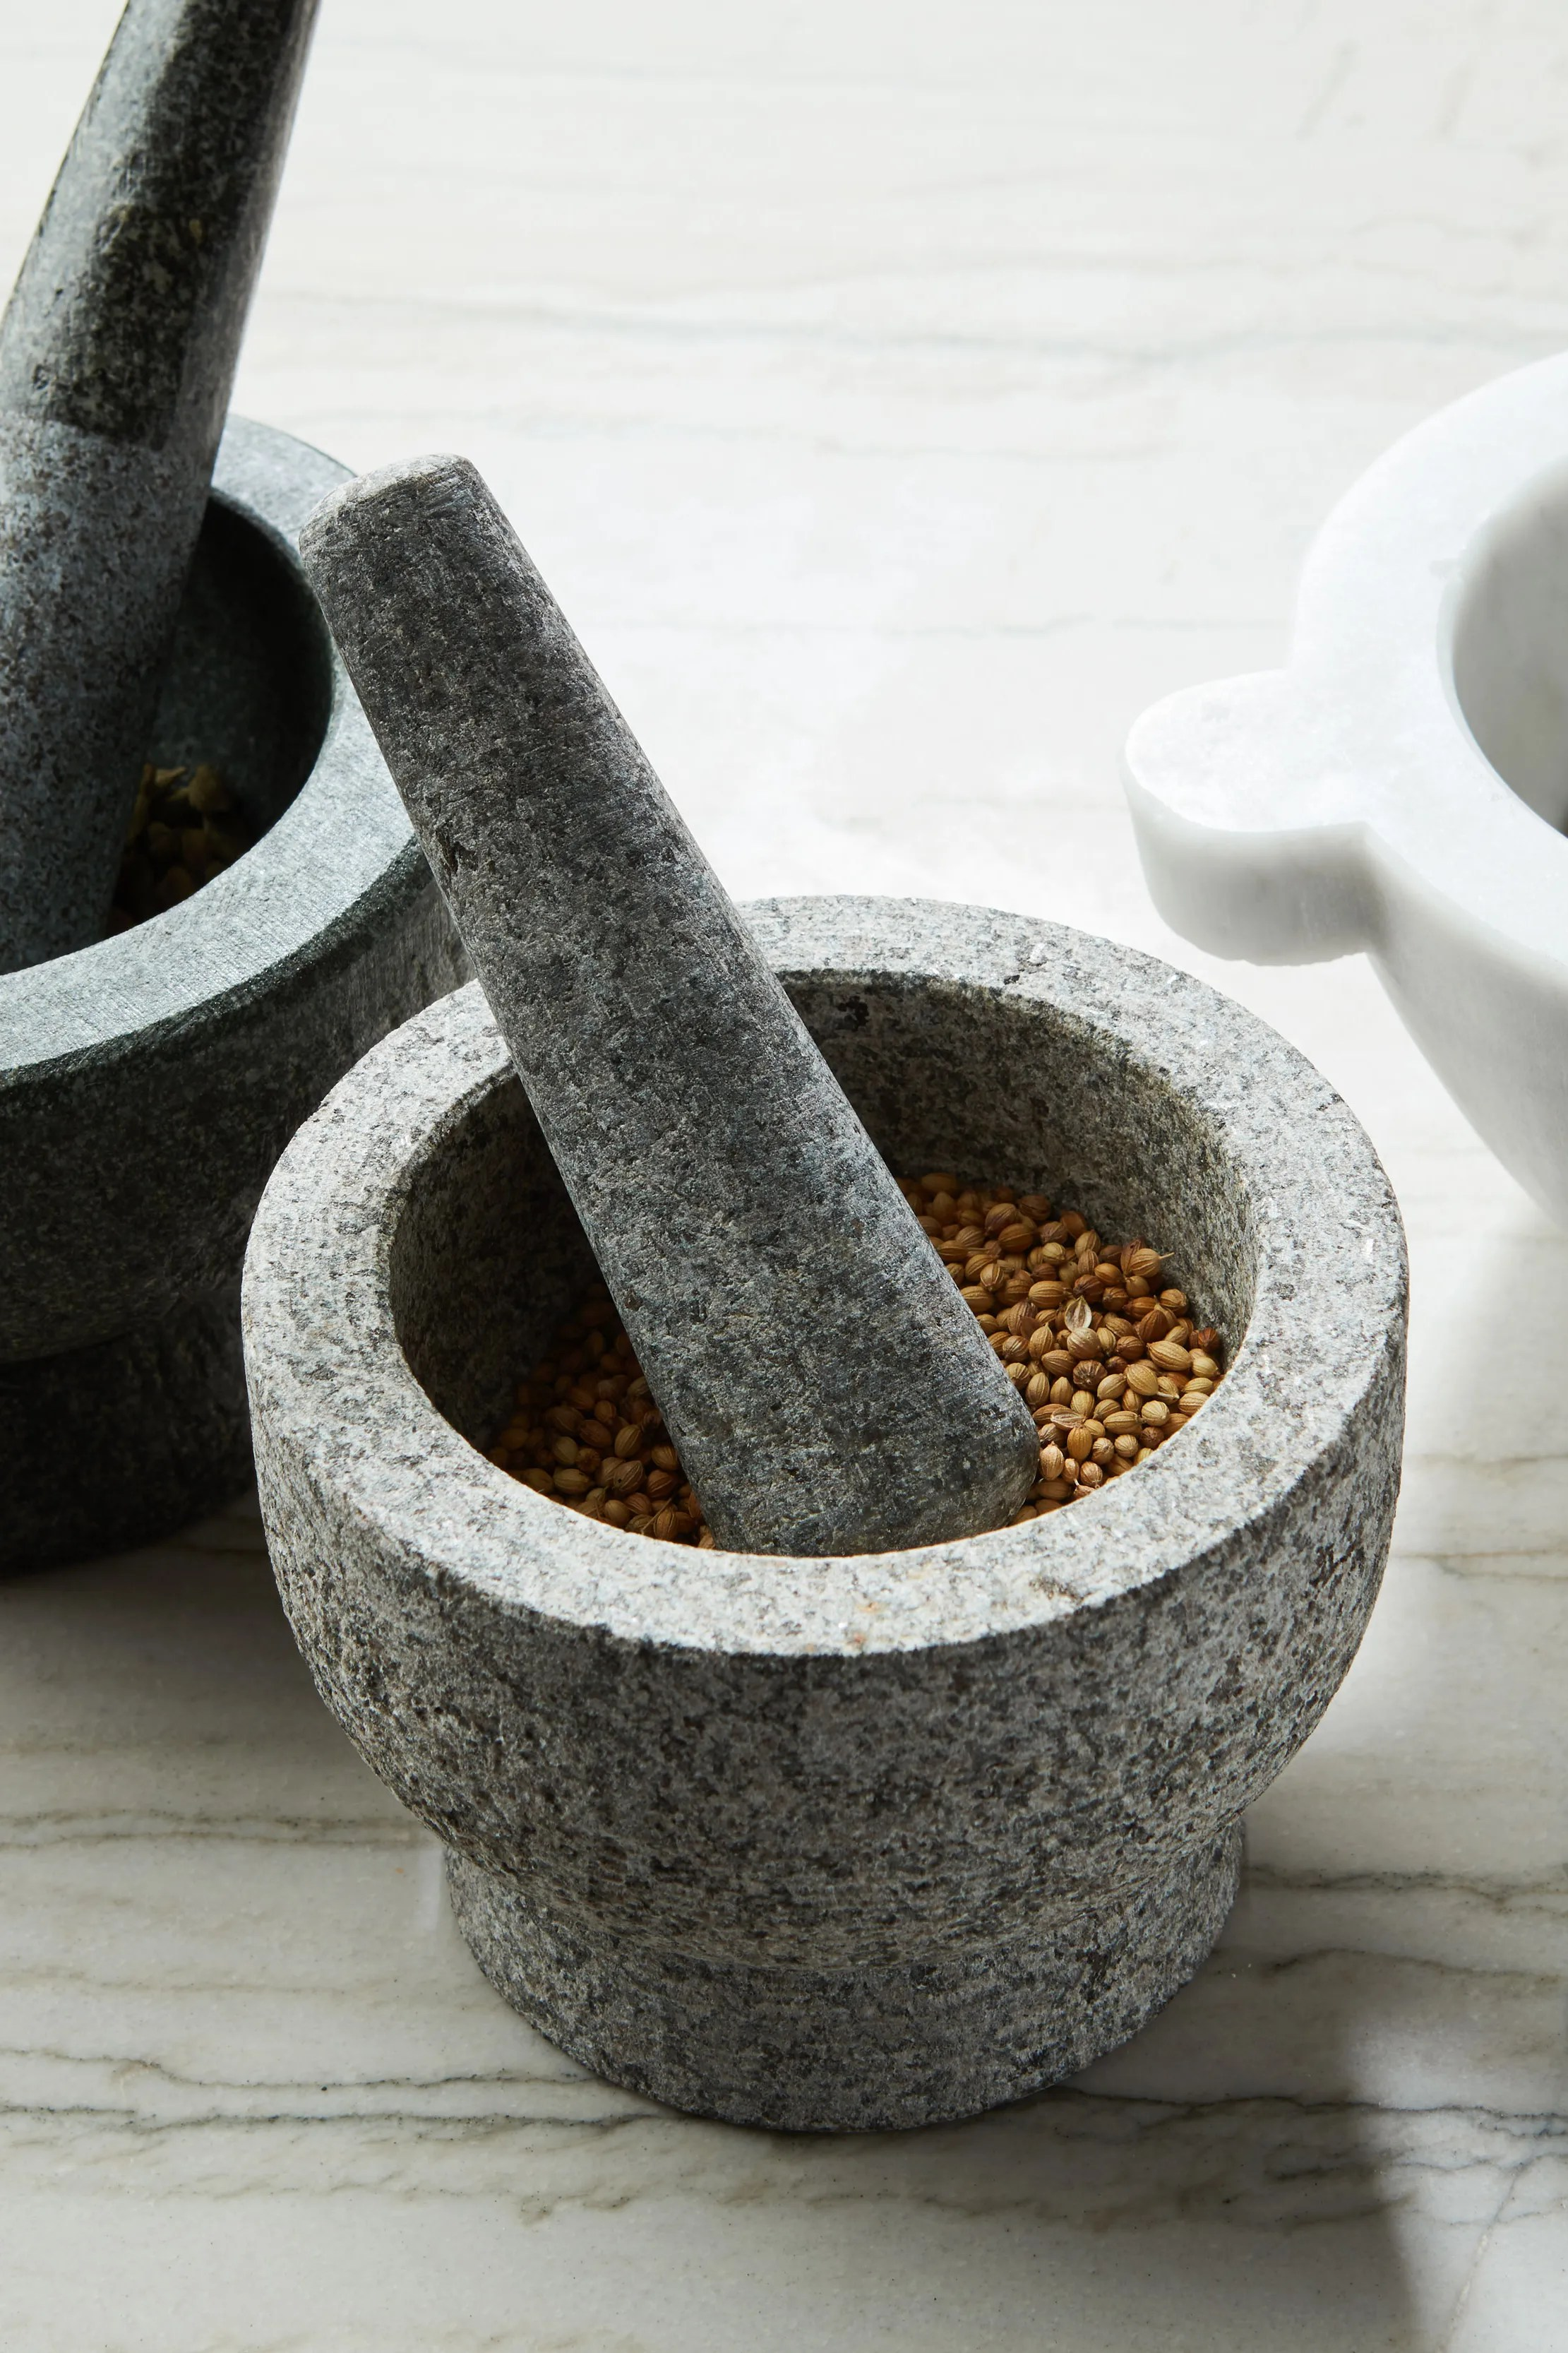 Picture Of Mortar And Pestle : picture, mortar, pestle, Guide, Choosing, Mortar, Pestle, Epicurious